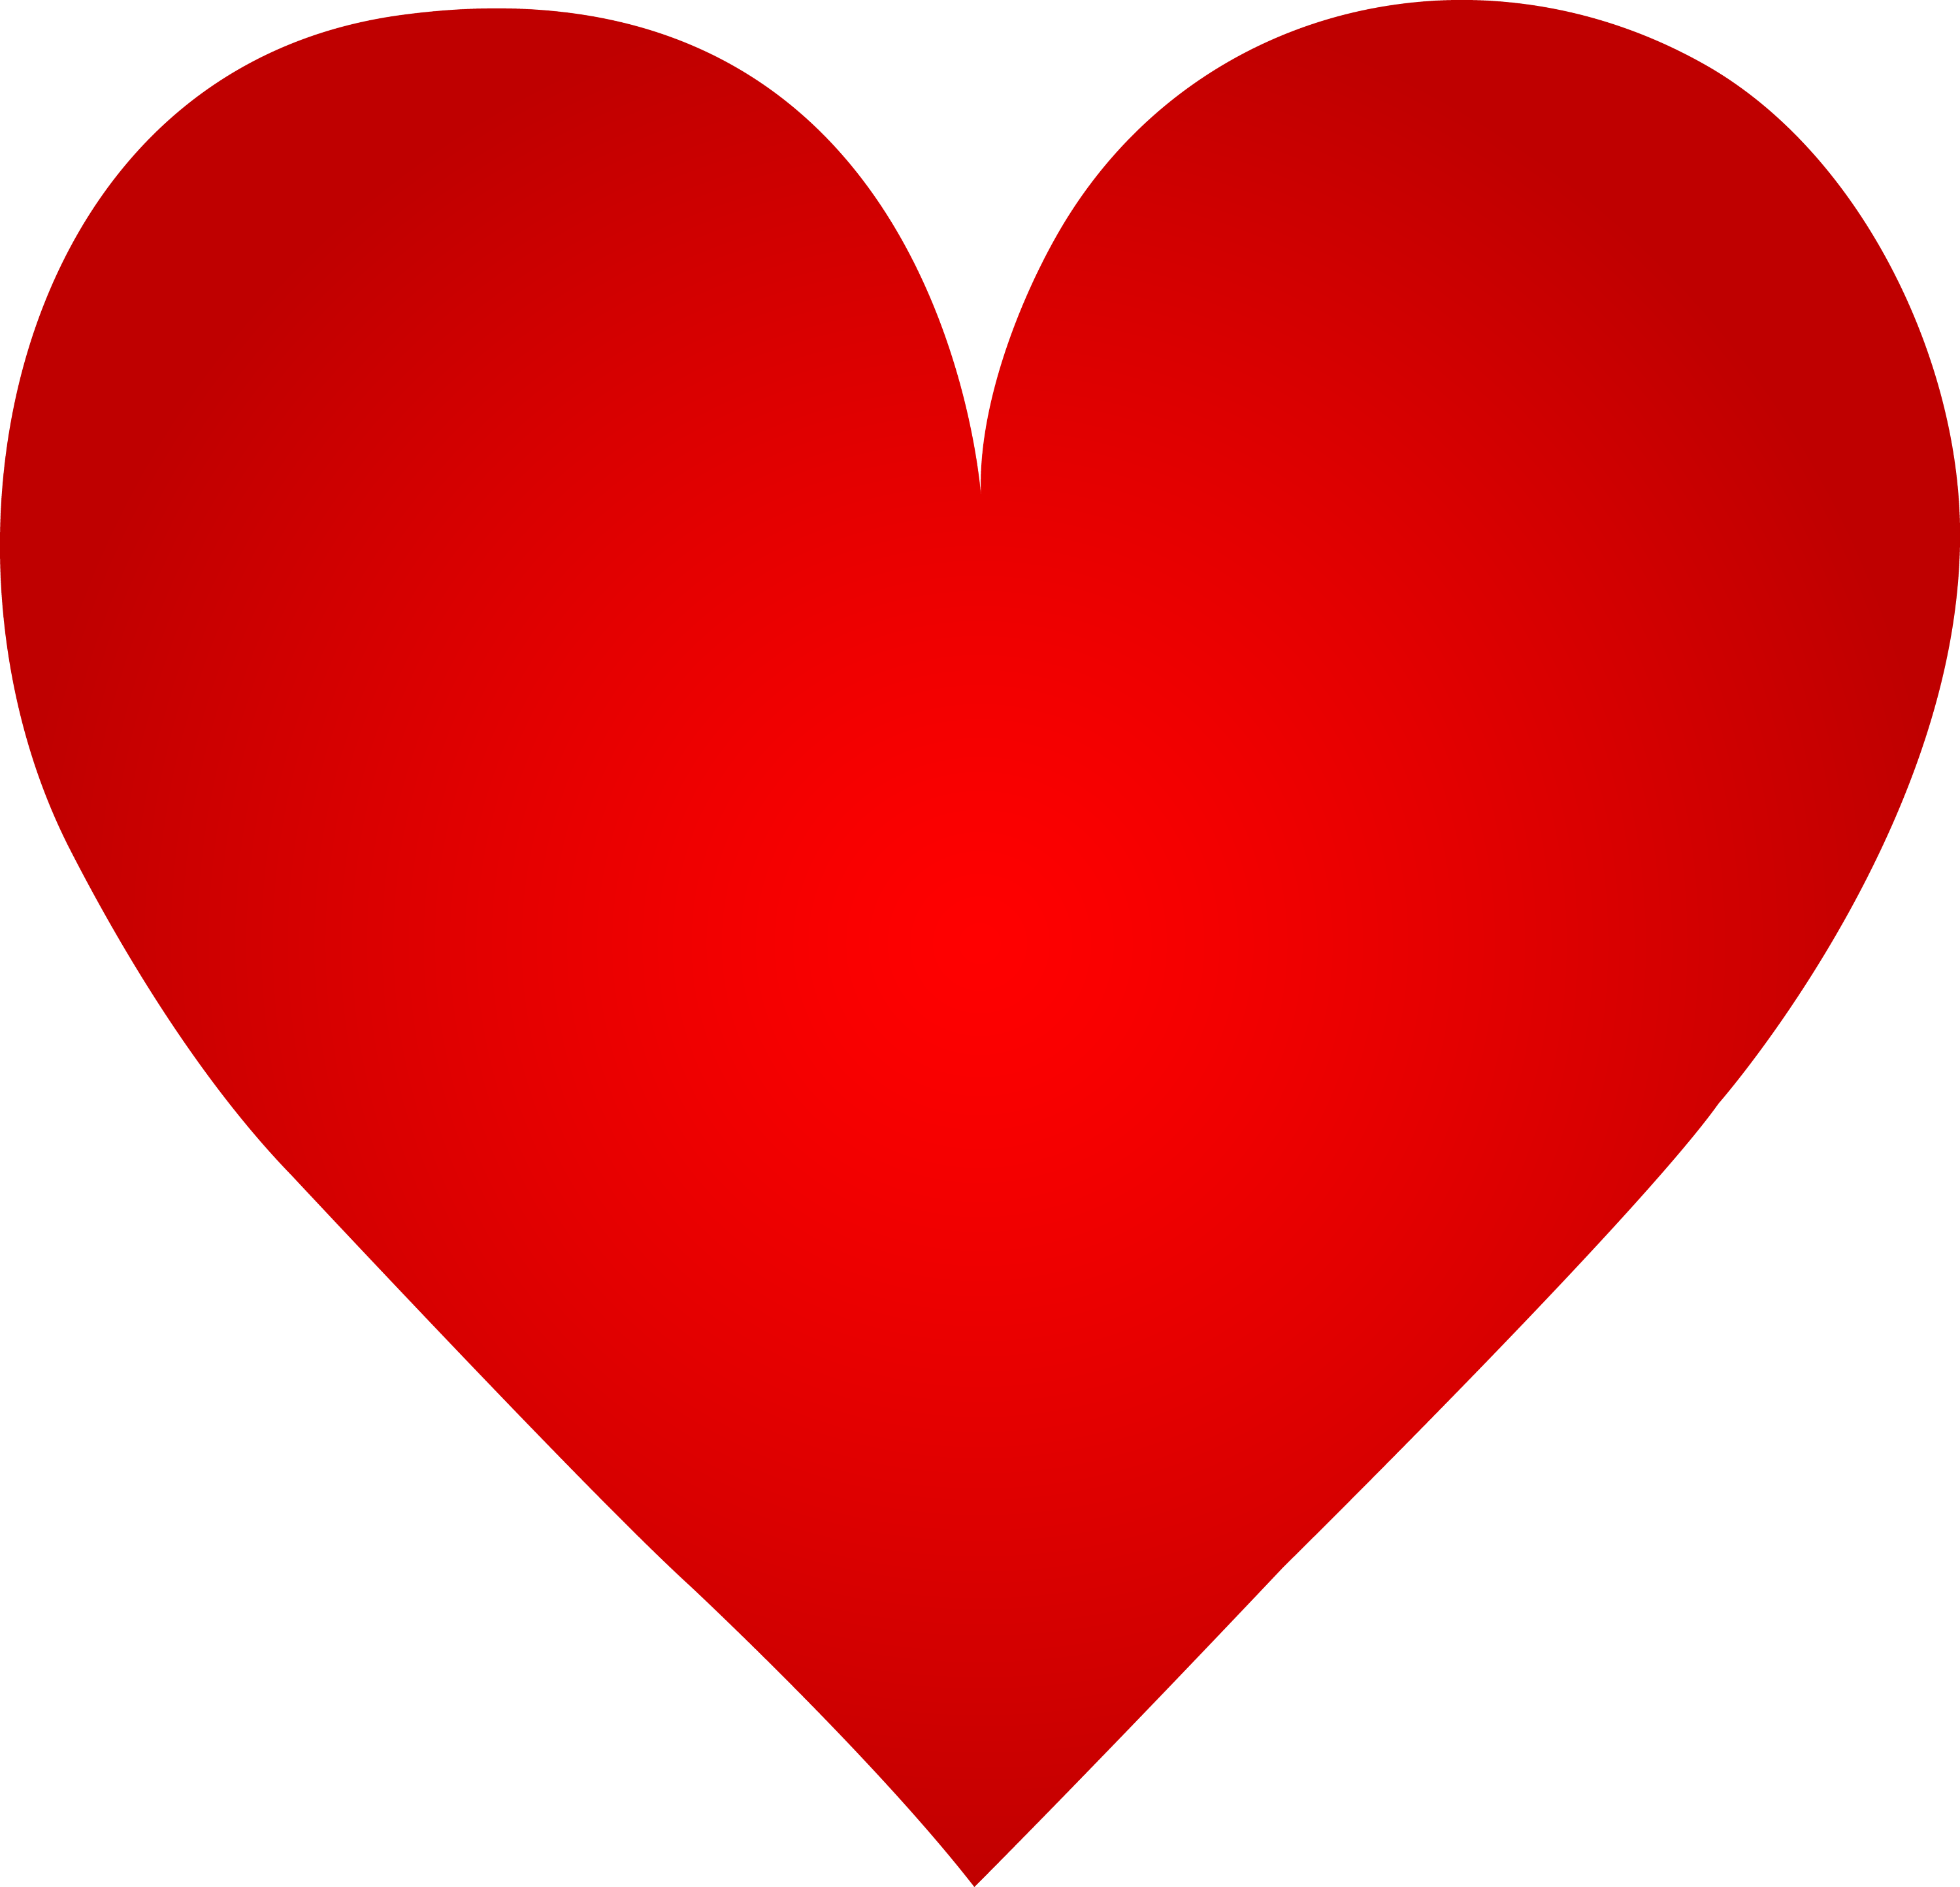 Big Red Heart - Free Clip Art